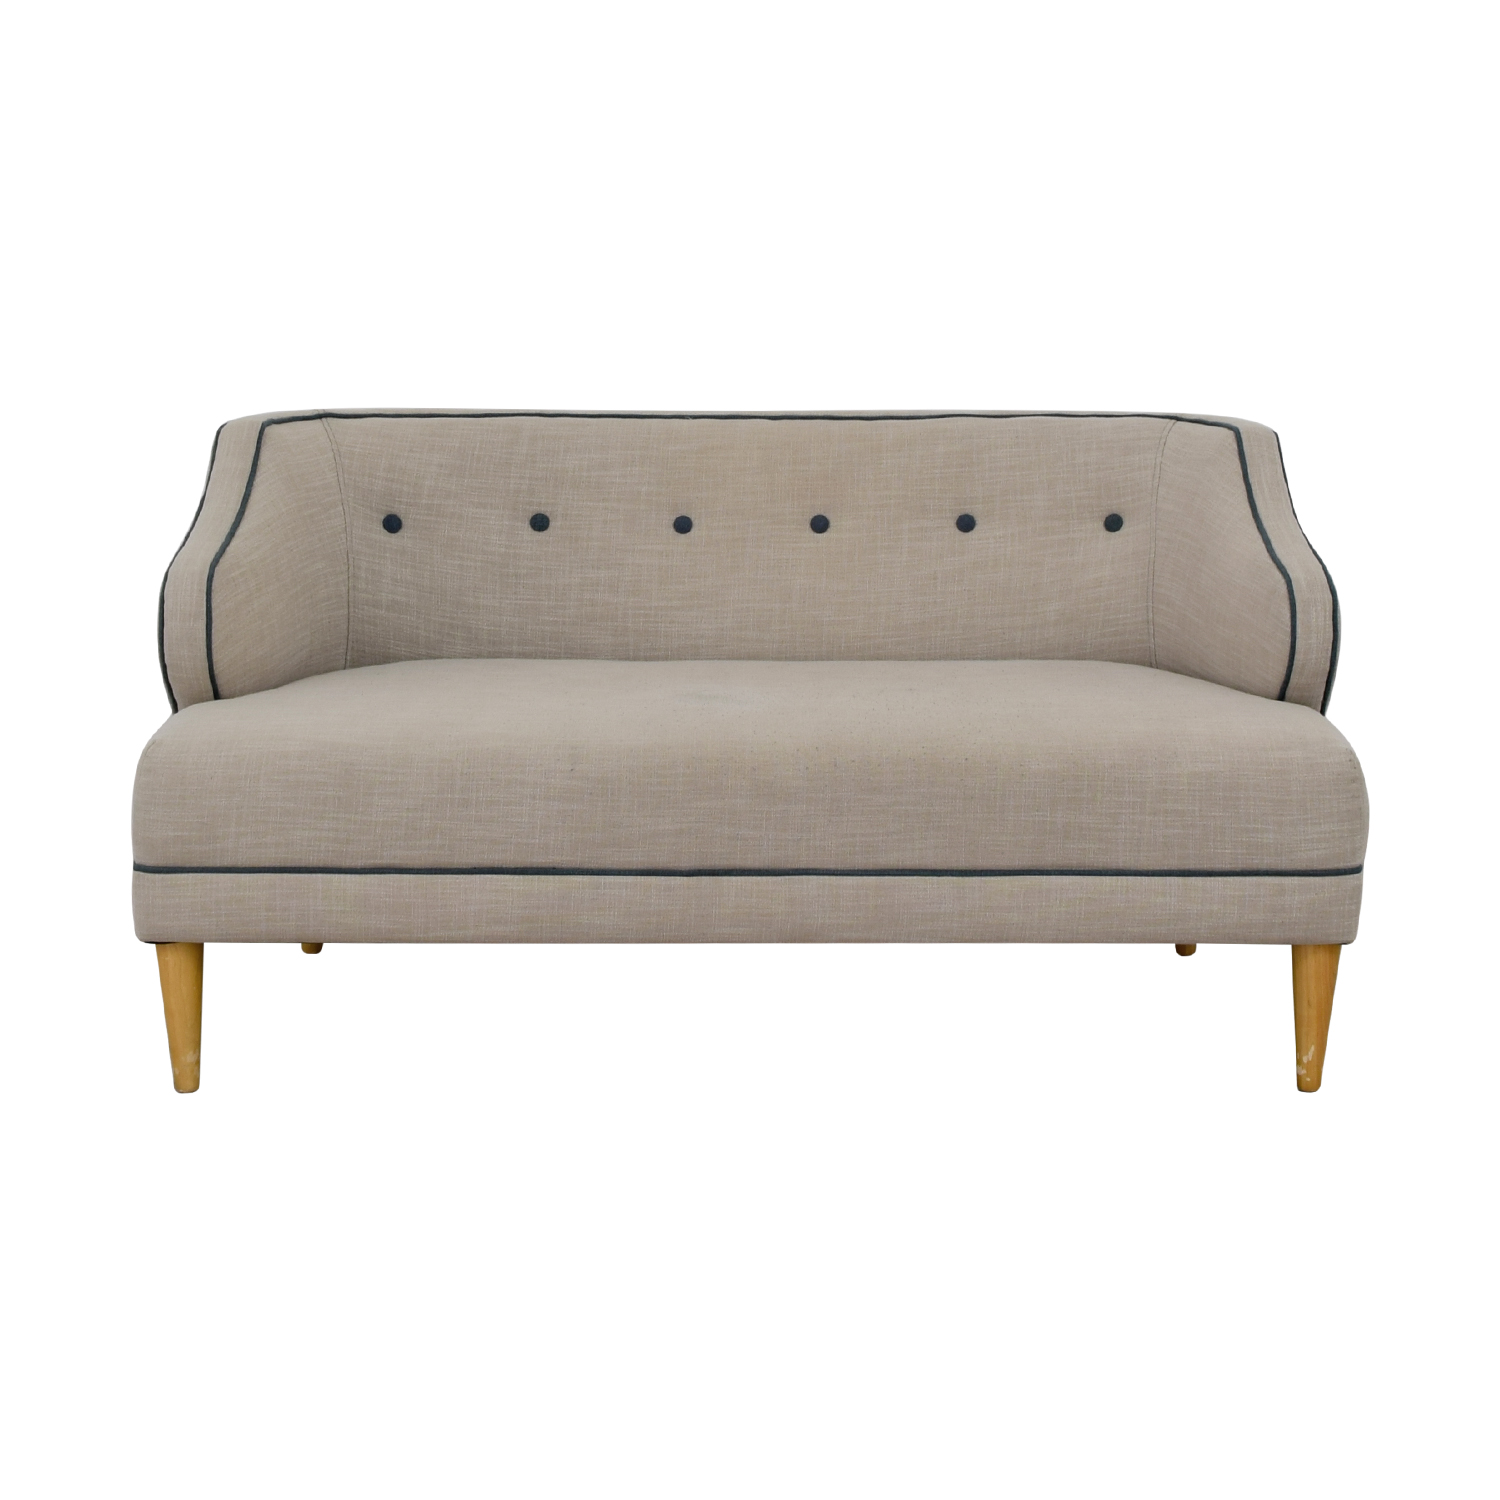 West Elm West Elm Custom Beige Upholstered Captain Loveseat for sale